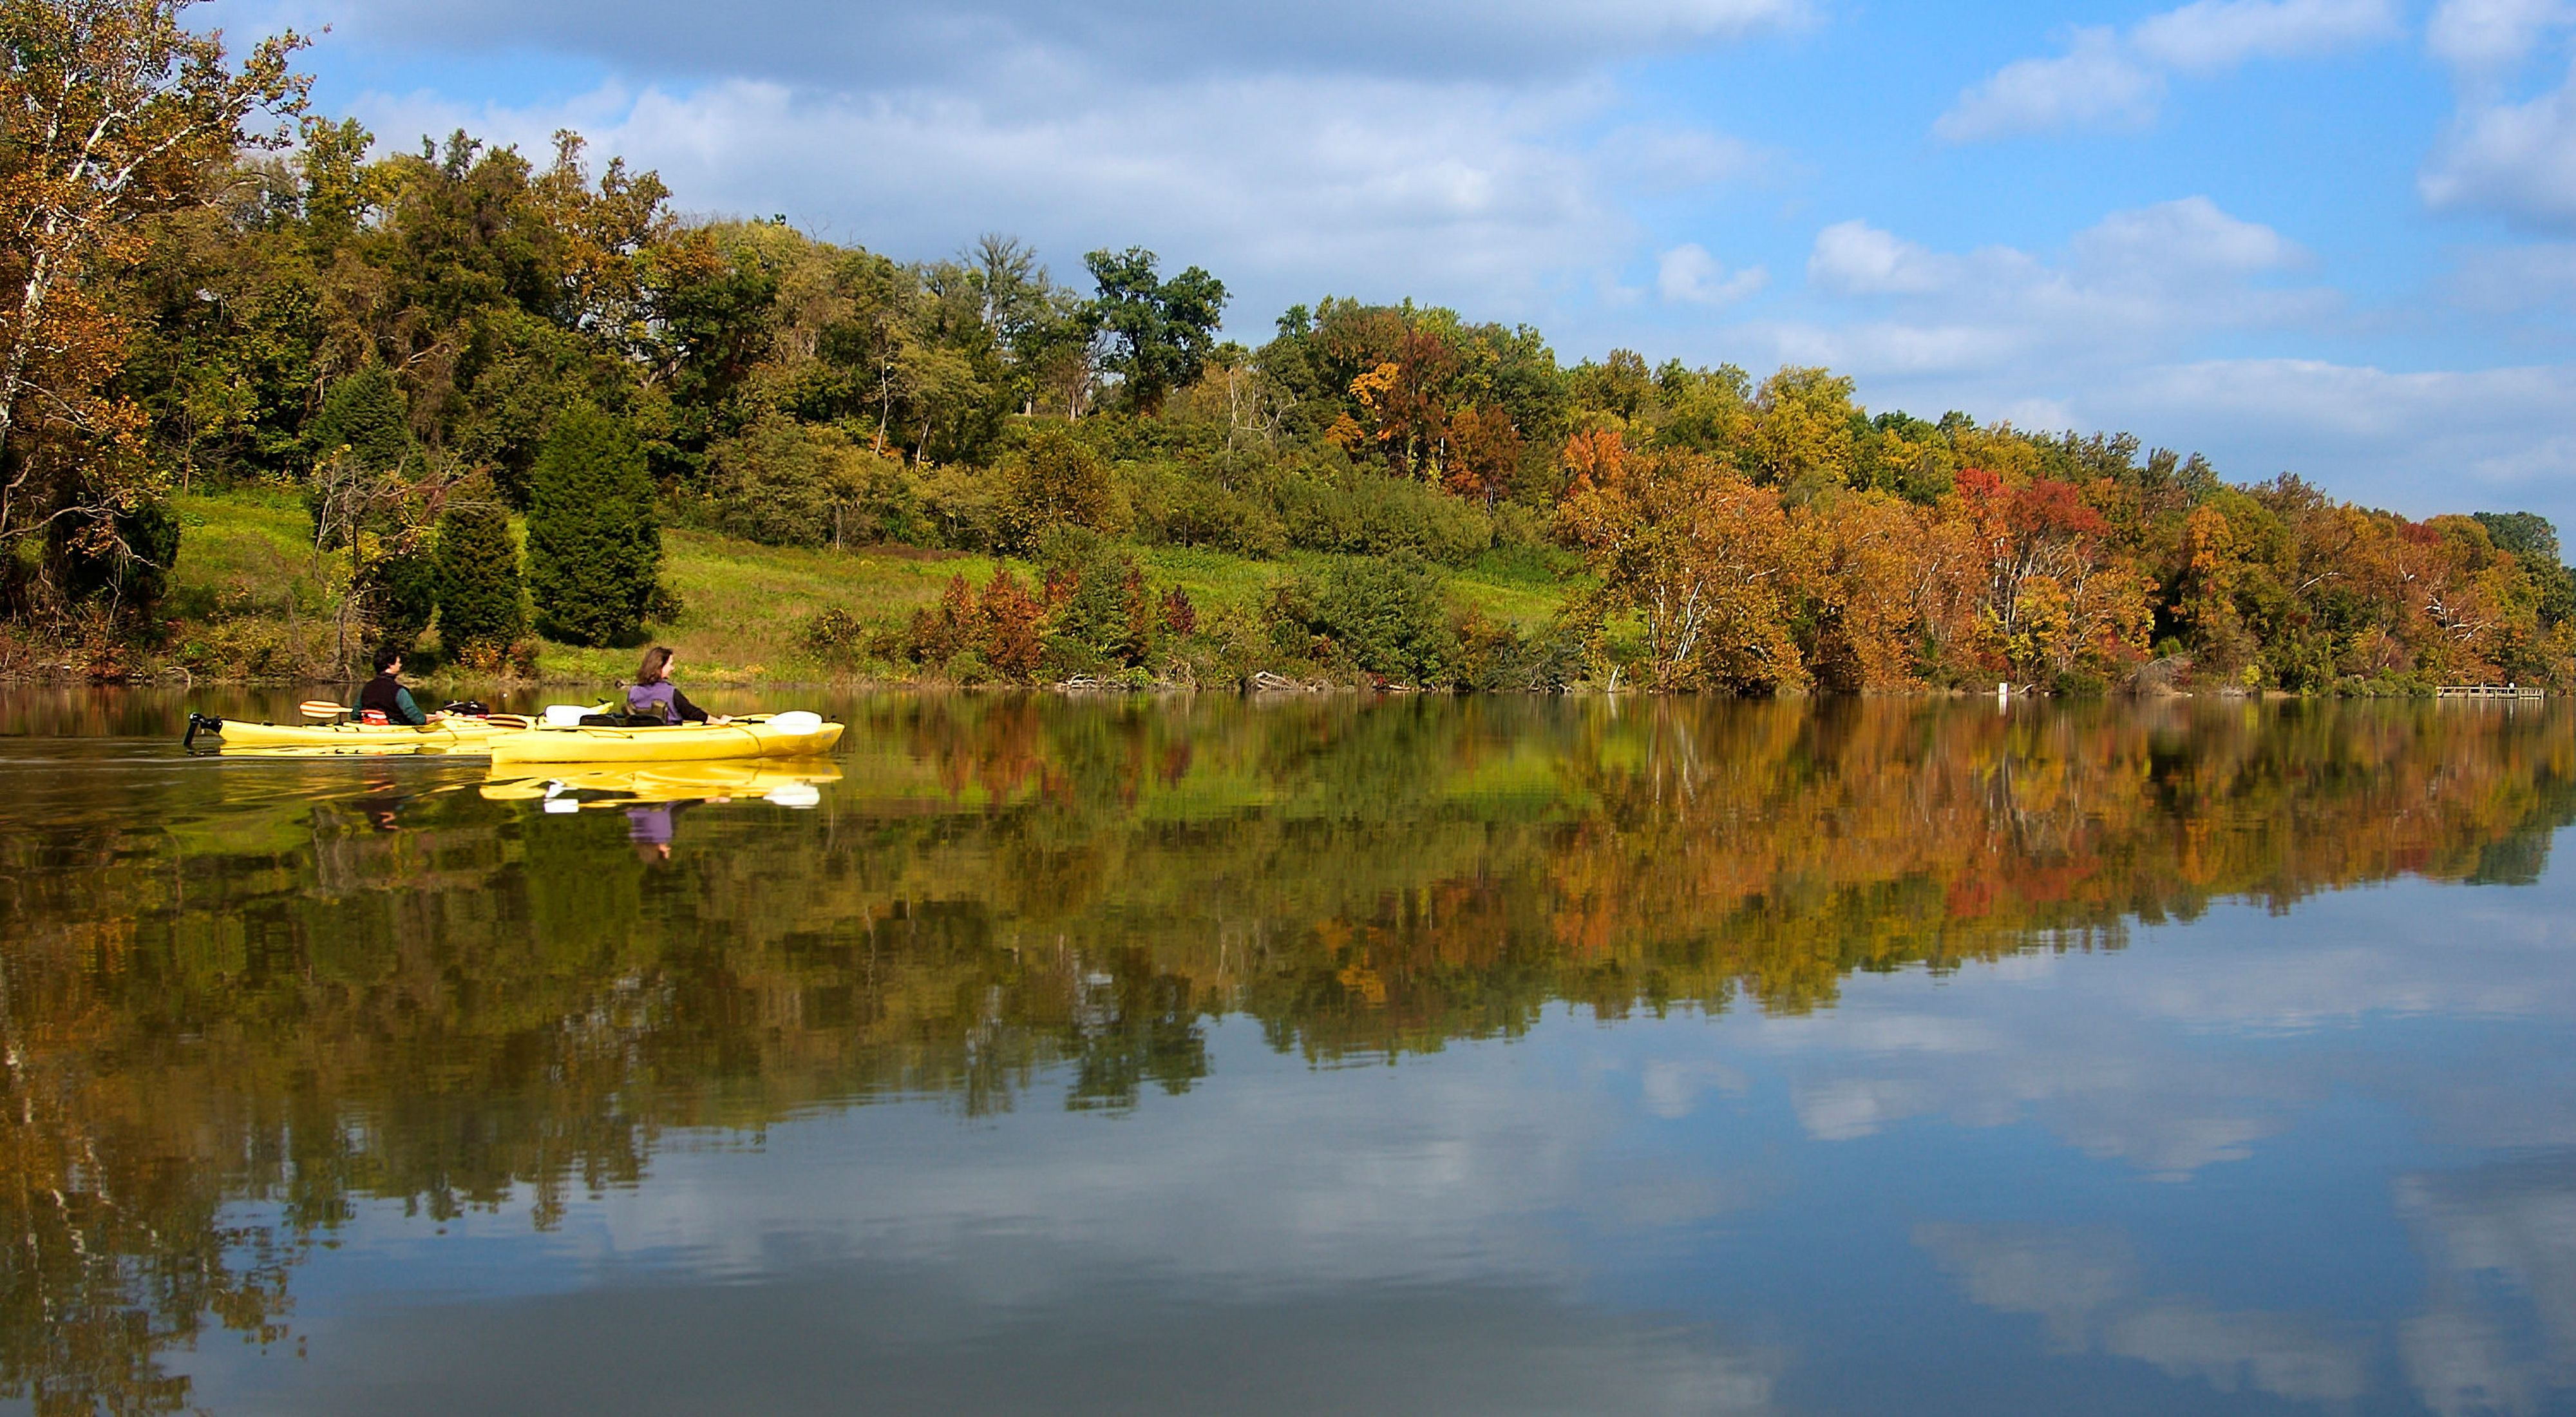 Kayakers enjoy a fall day on Nanjemoy Creek.